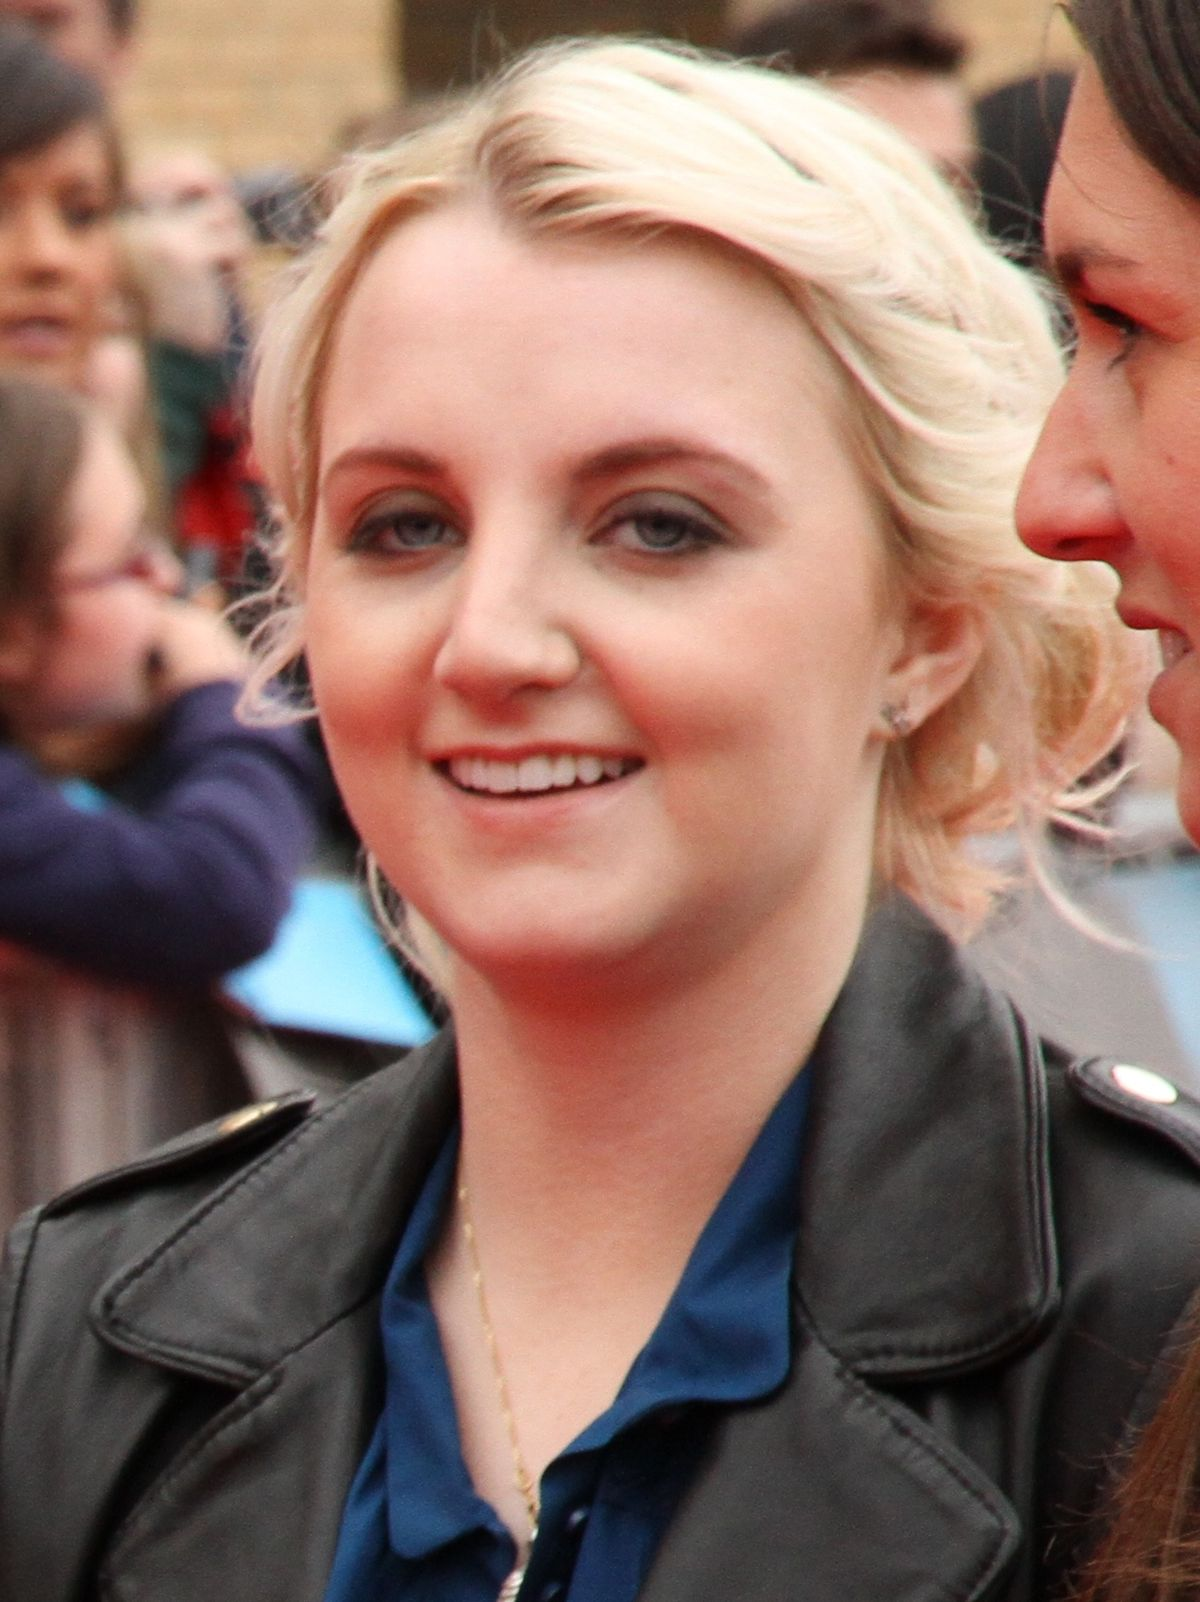 evanna lynch - wikipedia